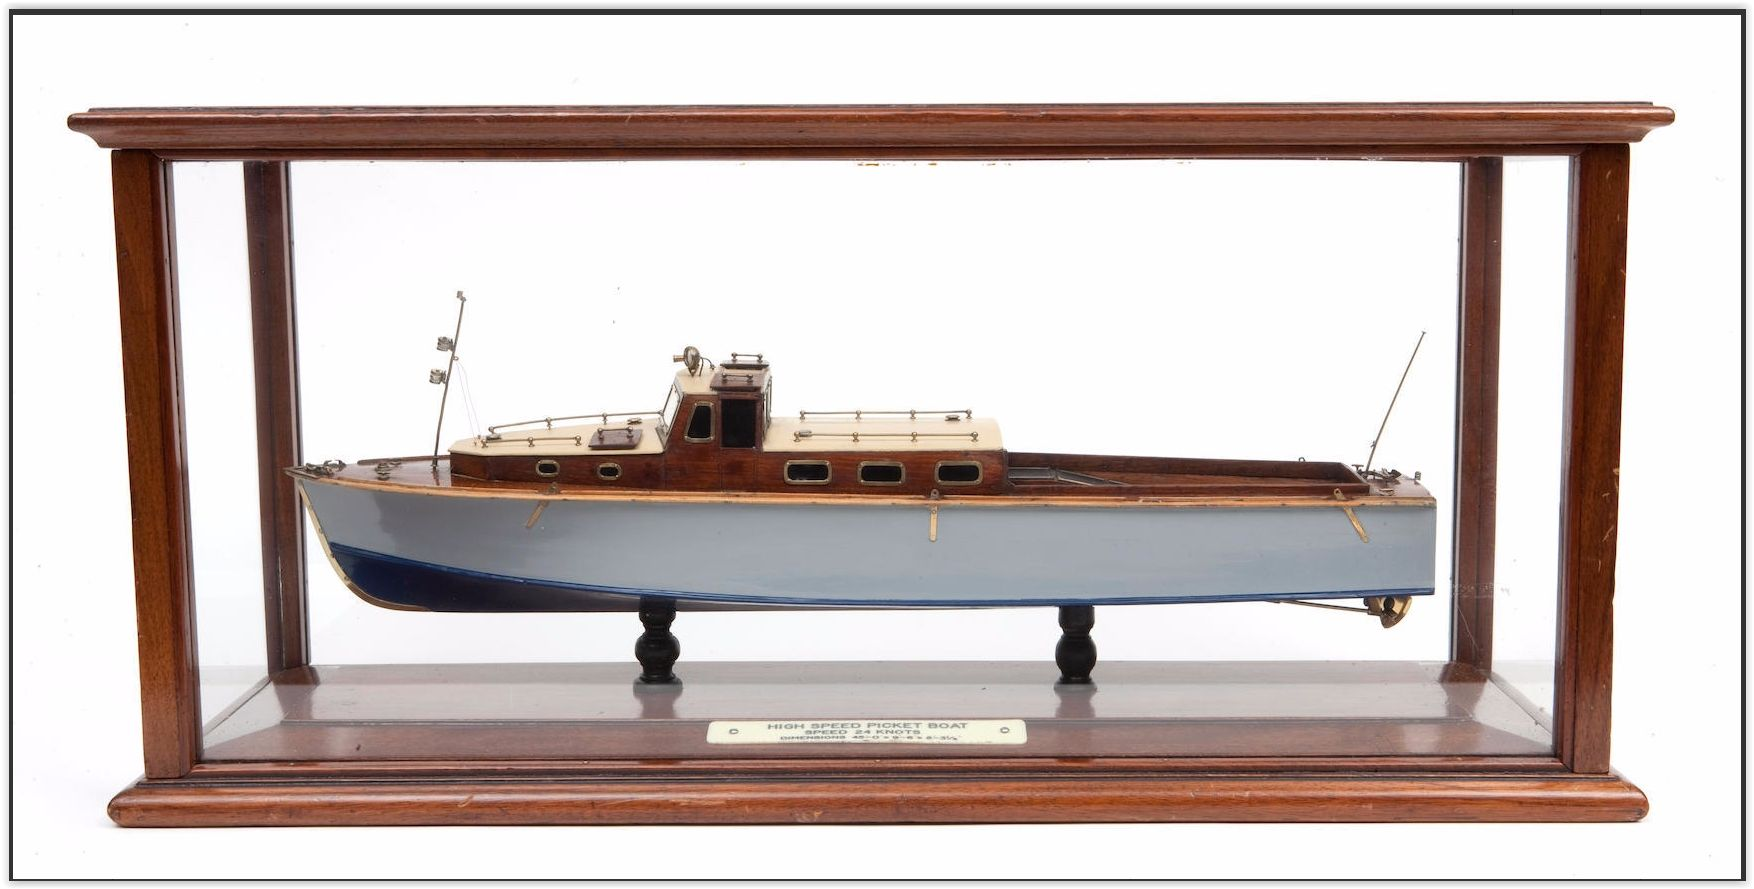 A shipbuilders' presentation model of a 45-foot naval picketboat, J. Samuel White of Cowes (British, circa 1934) The hull built up from the solid in 1:24 scale, painted and varnished mahogany detailed with brass fittings, supported by two turned pedestals in glazed mahogany case